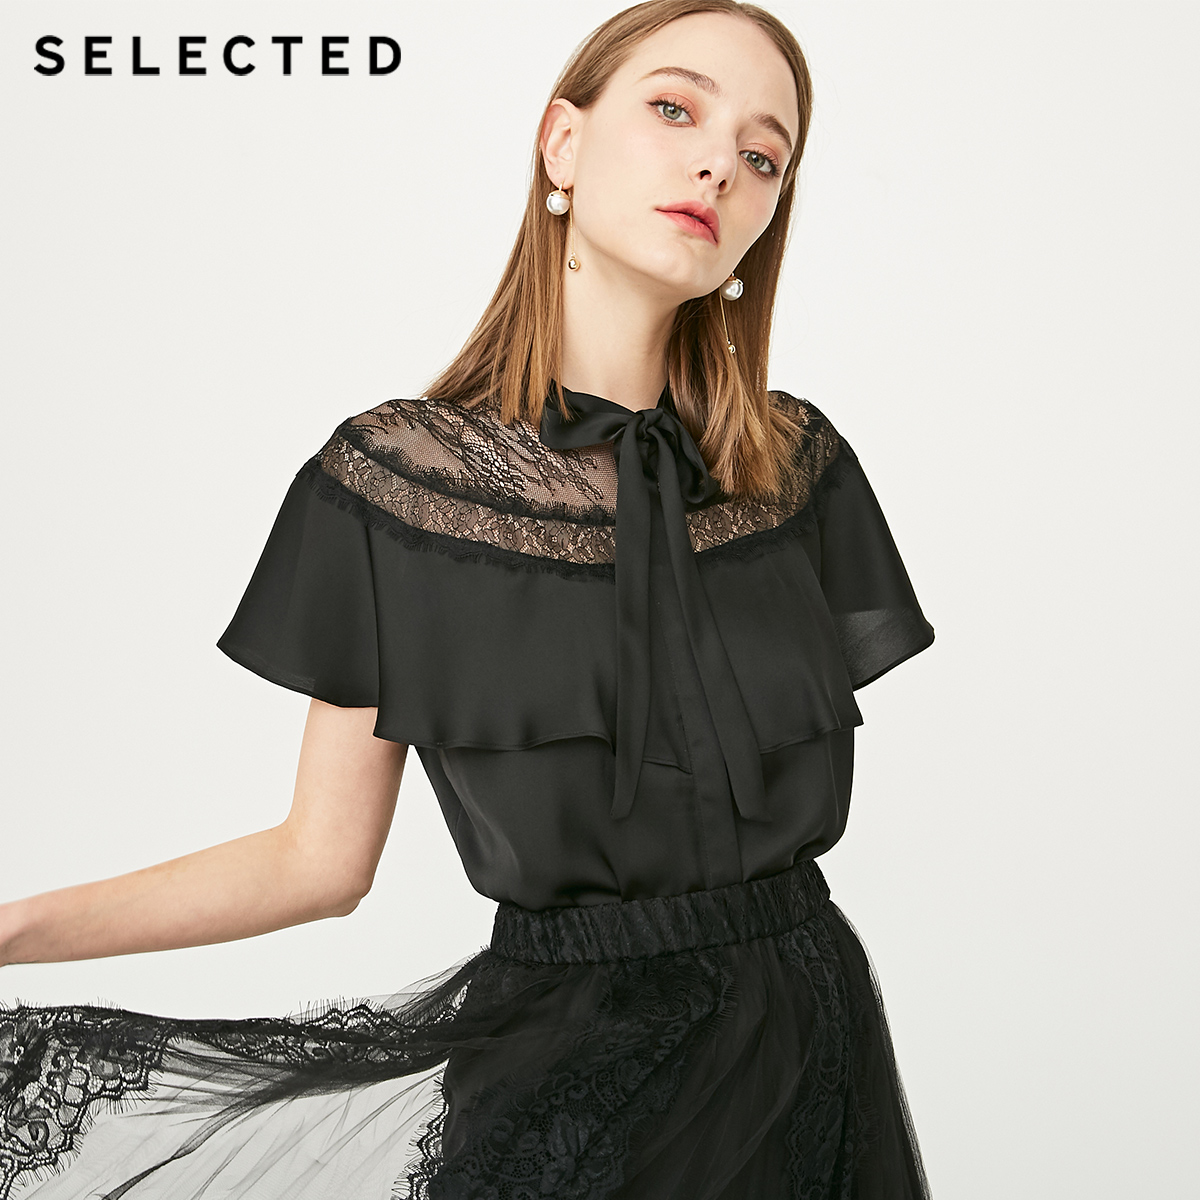 SELECTED Women s Summer Laced Short sleeved Shirt S 419204502